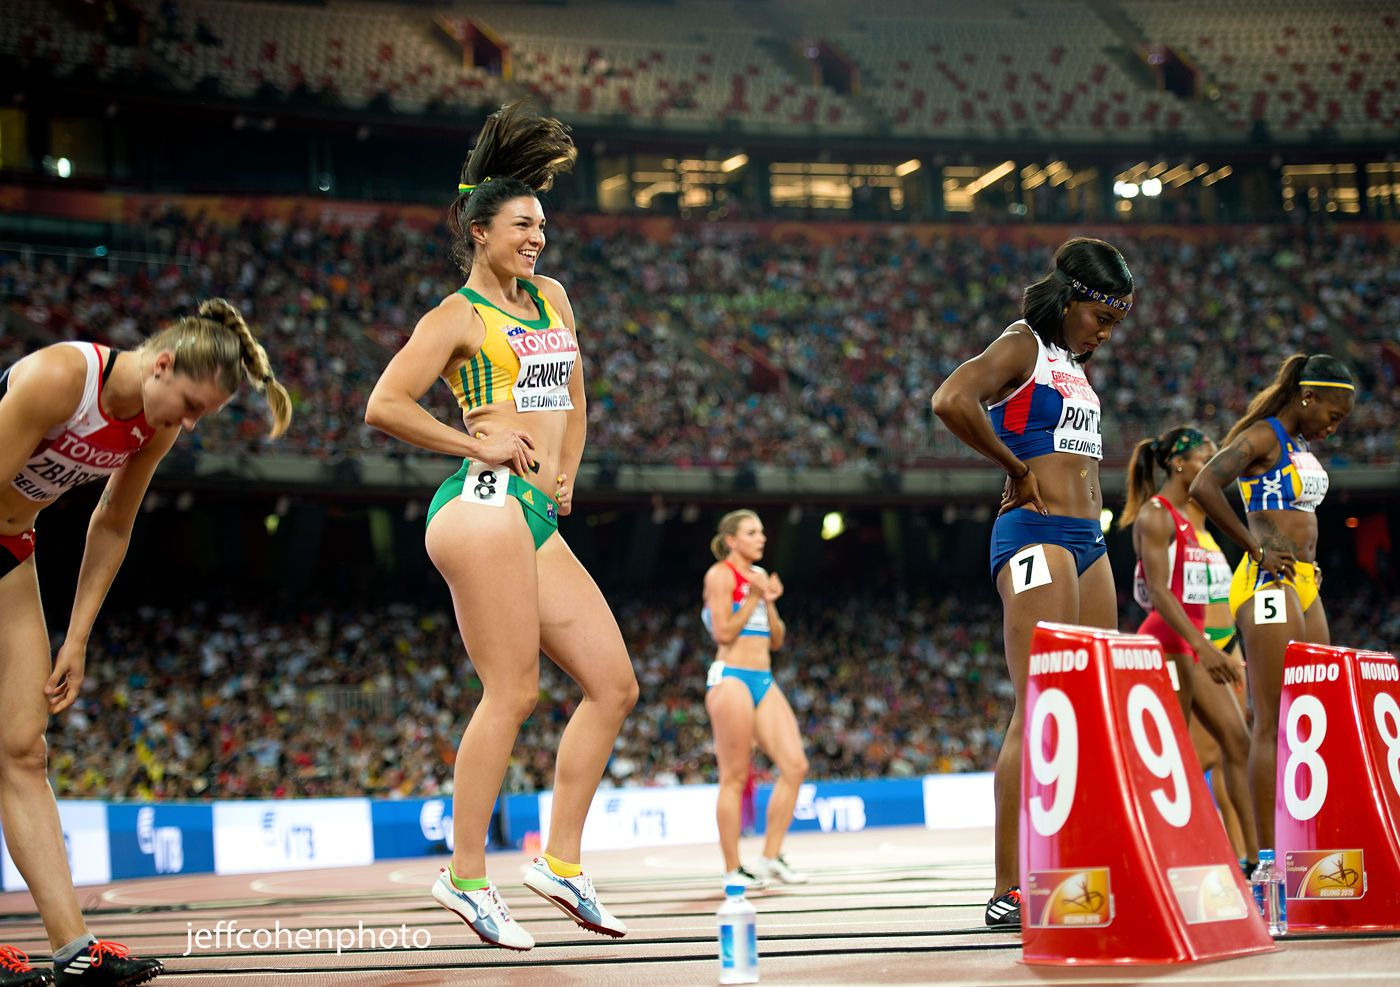 1beijing2015_night_7_jenneke_110mh_jeff_cohen_photo_27031web.jpg